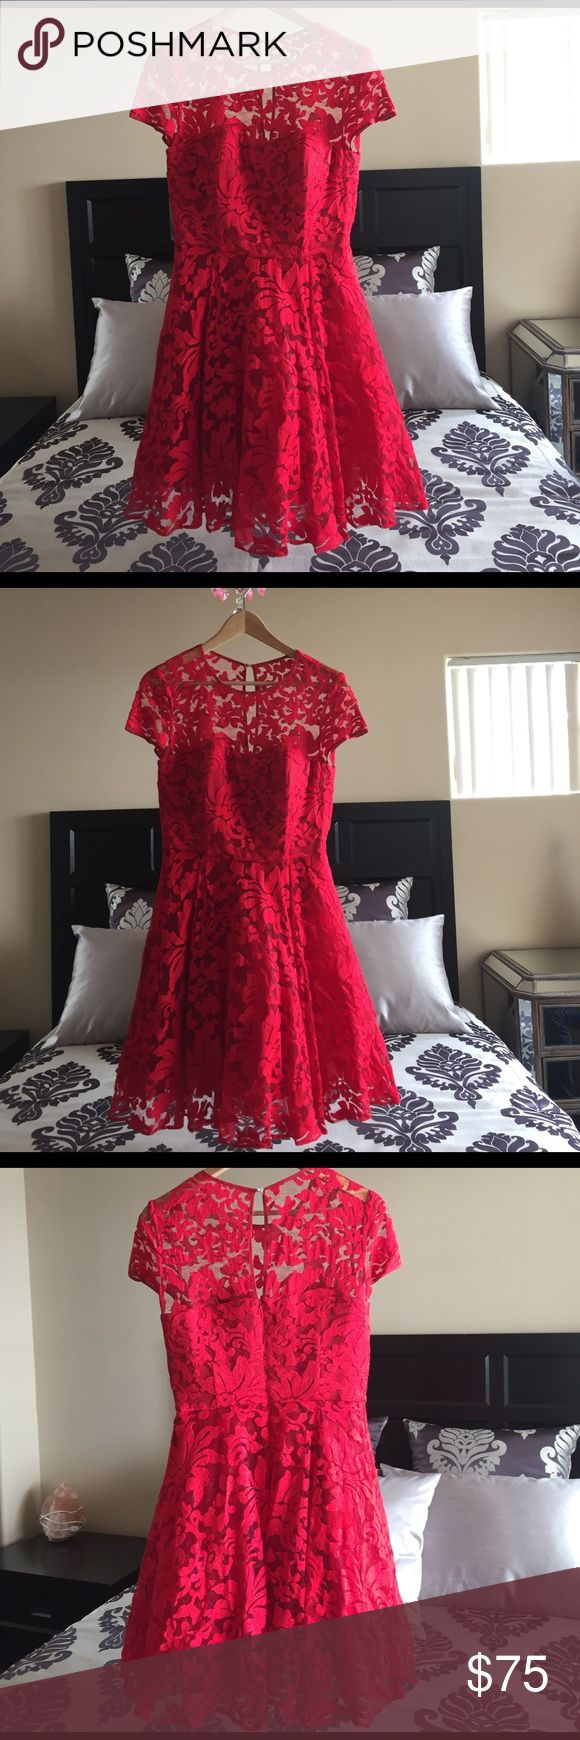 Shop women s ted baker london red size 2 prom at a discounted price at poshmark description ted baker red dress size sold by lorikk